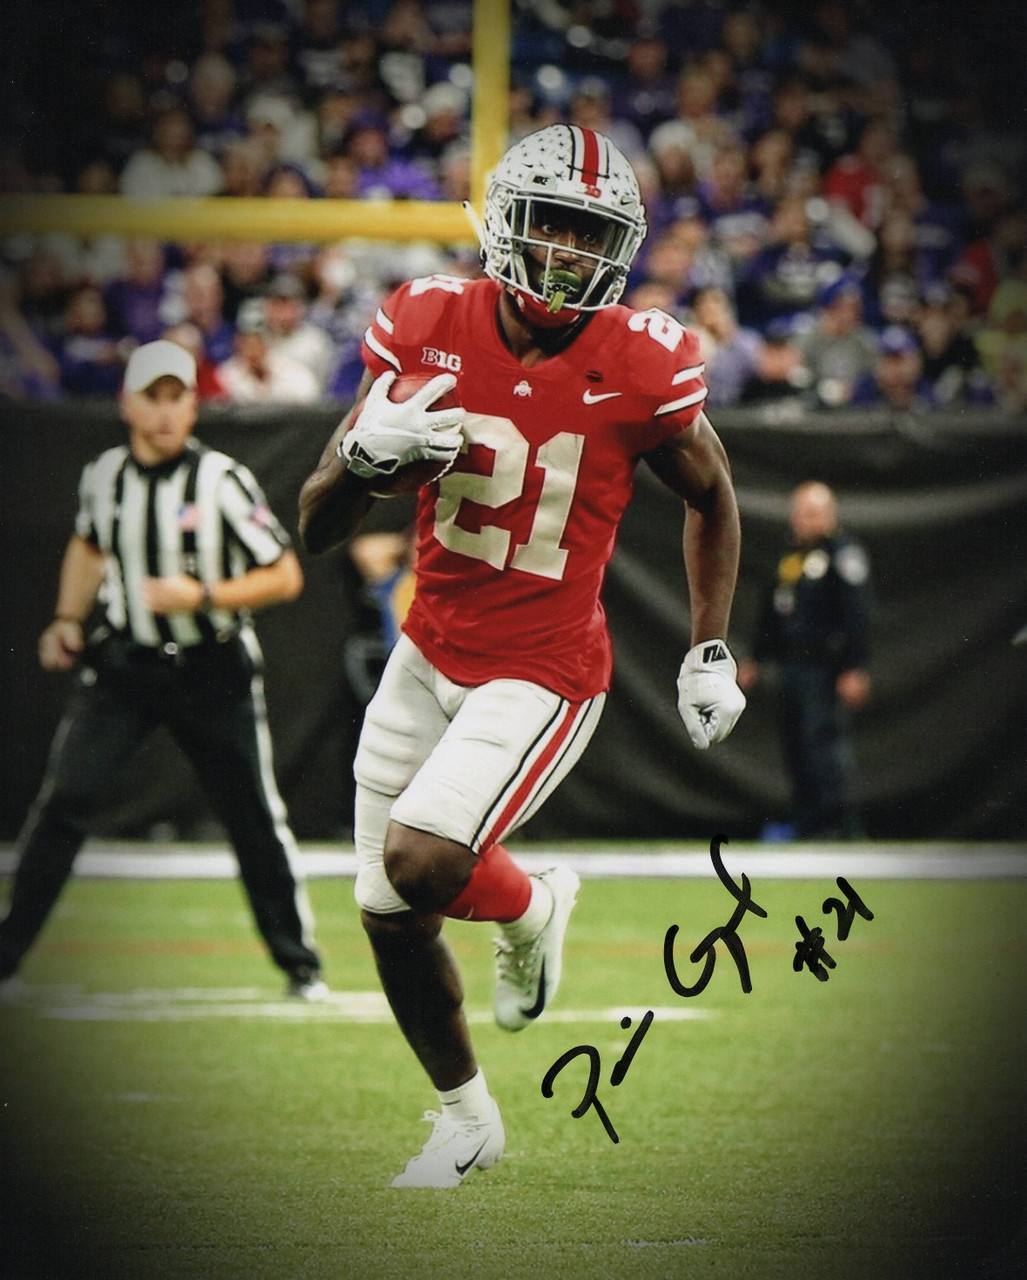 Parris Campbell Ohio State Buckeyes 11-1 11x14 Autographed Photo - Certified Authentic